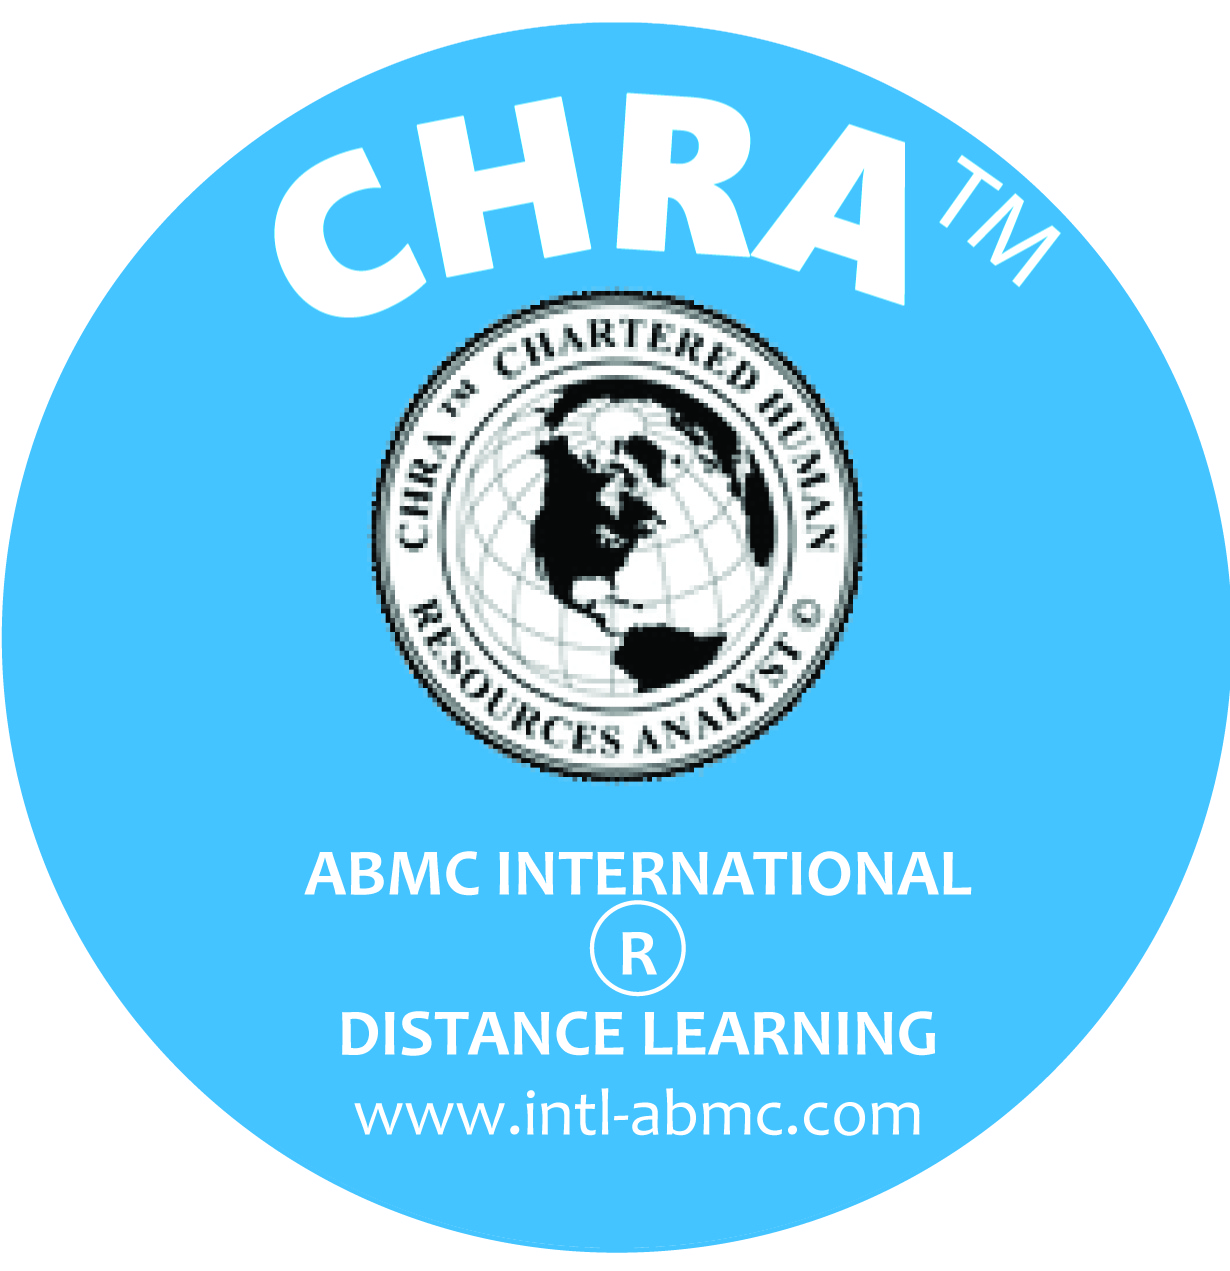 CHRA ® Chartered Human Resources Analyst